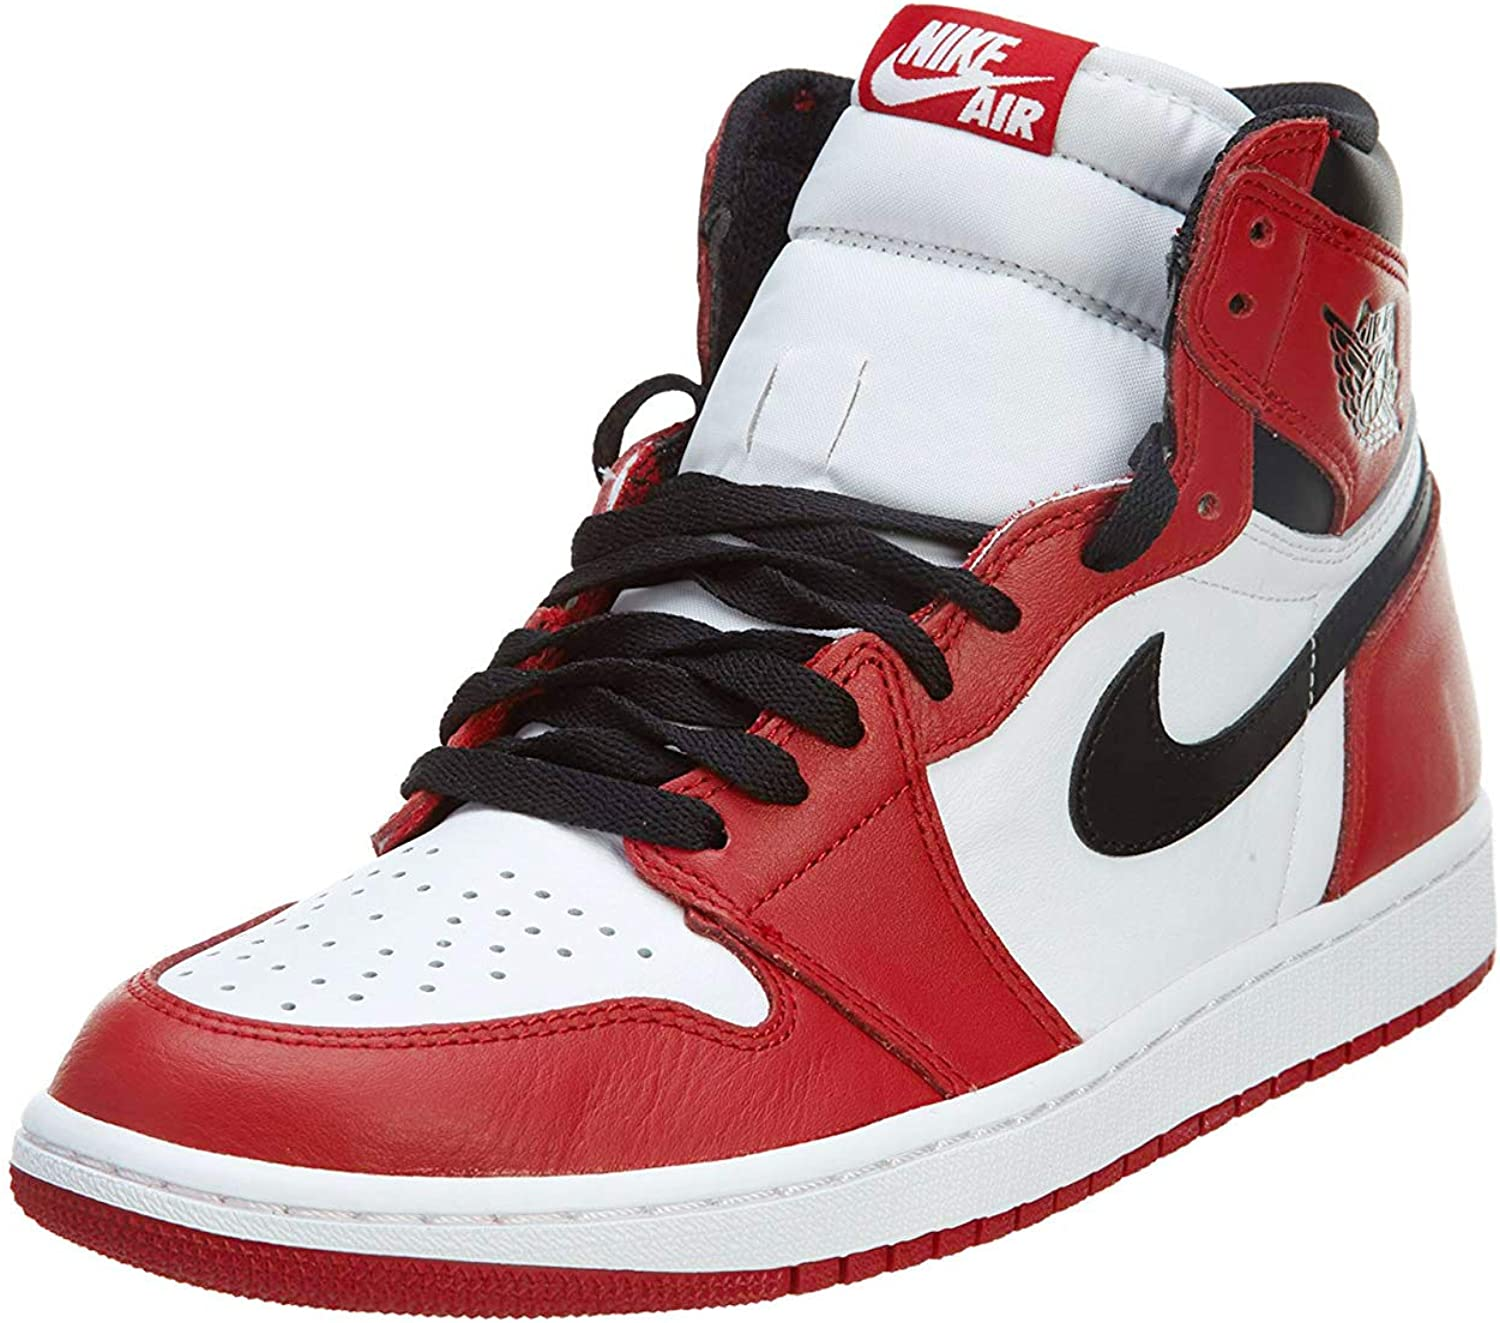 Física operación Para llevar  Amazon.com | Air Jordan 1 Retro High OG